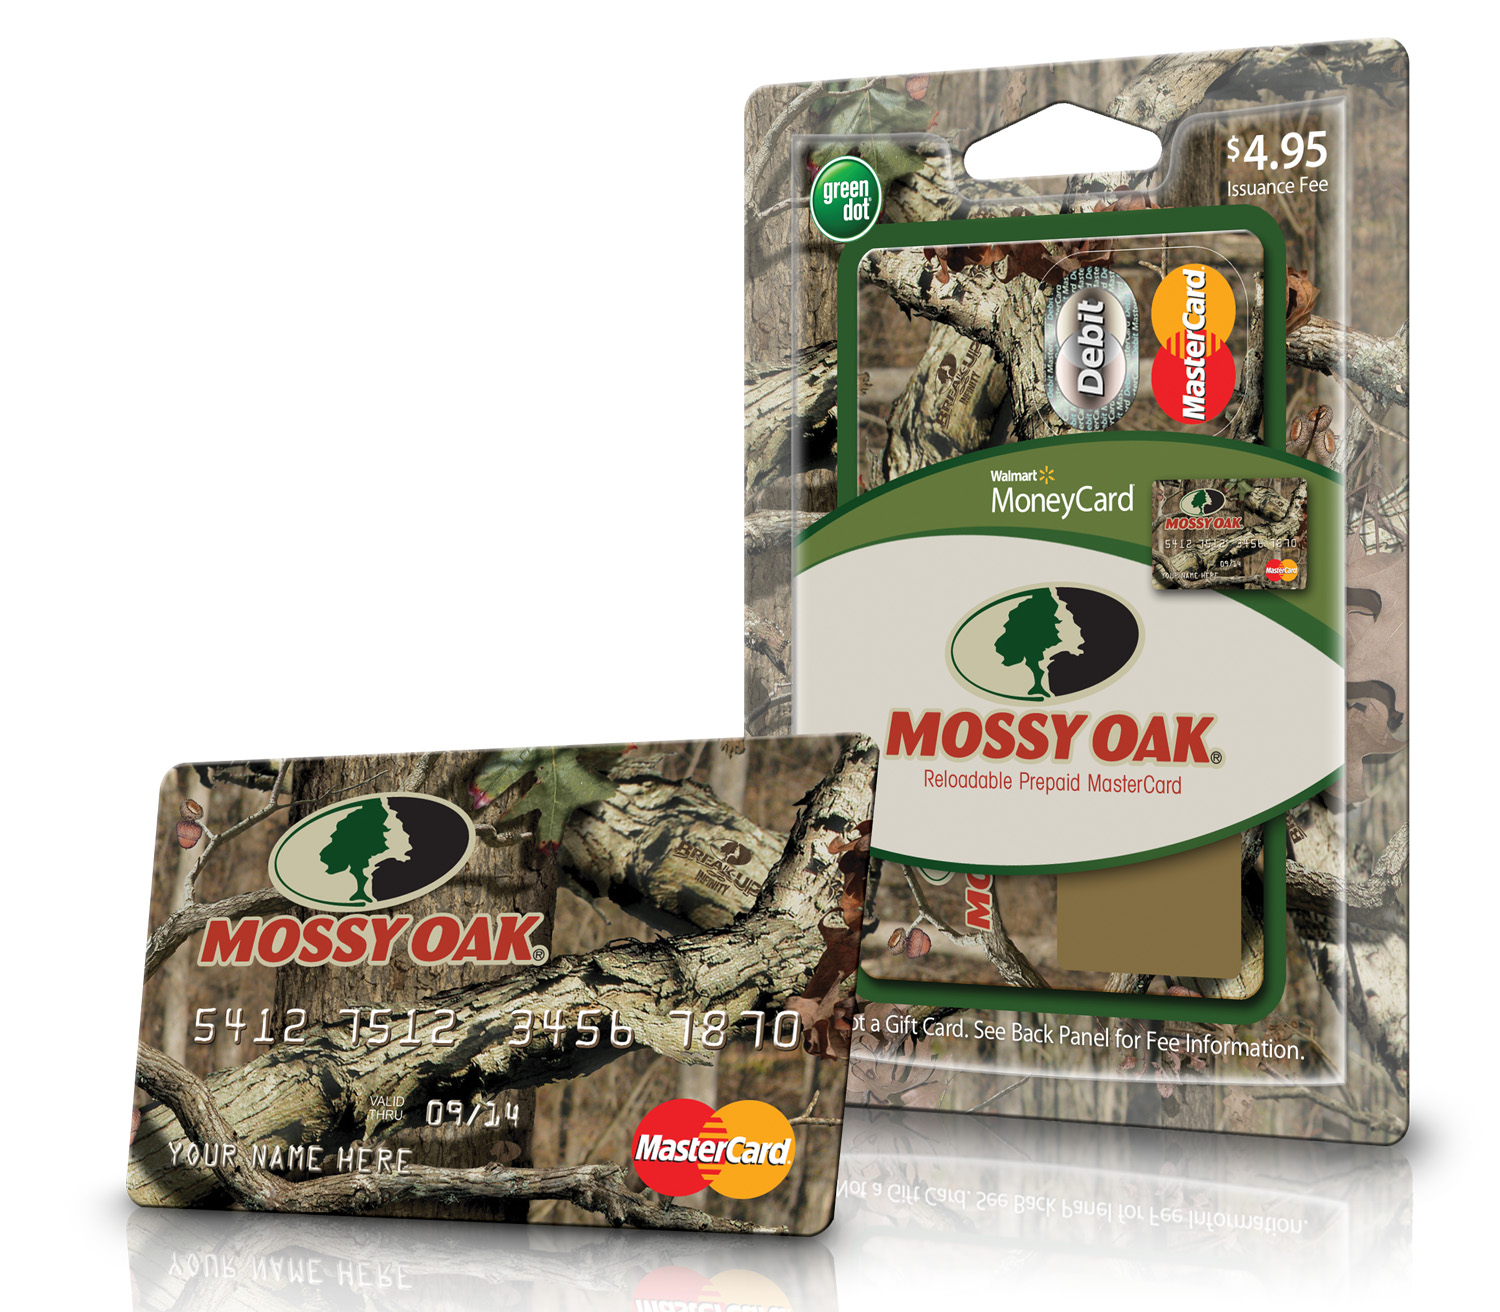 Debuting during hunting season, the Mossy Oak Card, features the Break-Up Infinity ® camouflage design. The Cards can be found on sale at participating stores in the Walmart MoneyCenter, in the check-out lanes, as well as in the hunting section of Walmart participating stores.